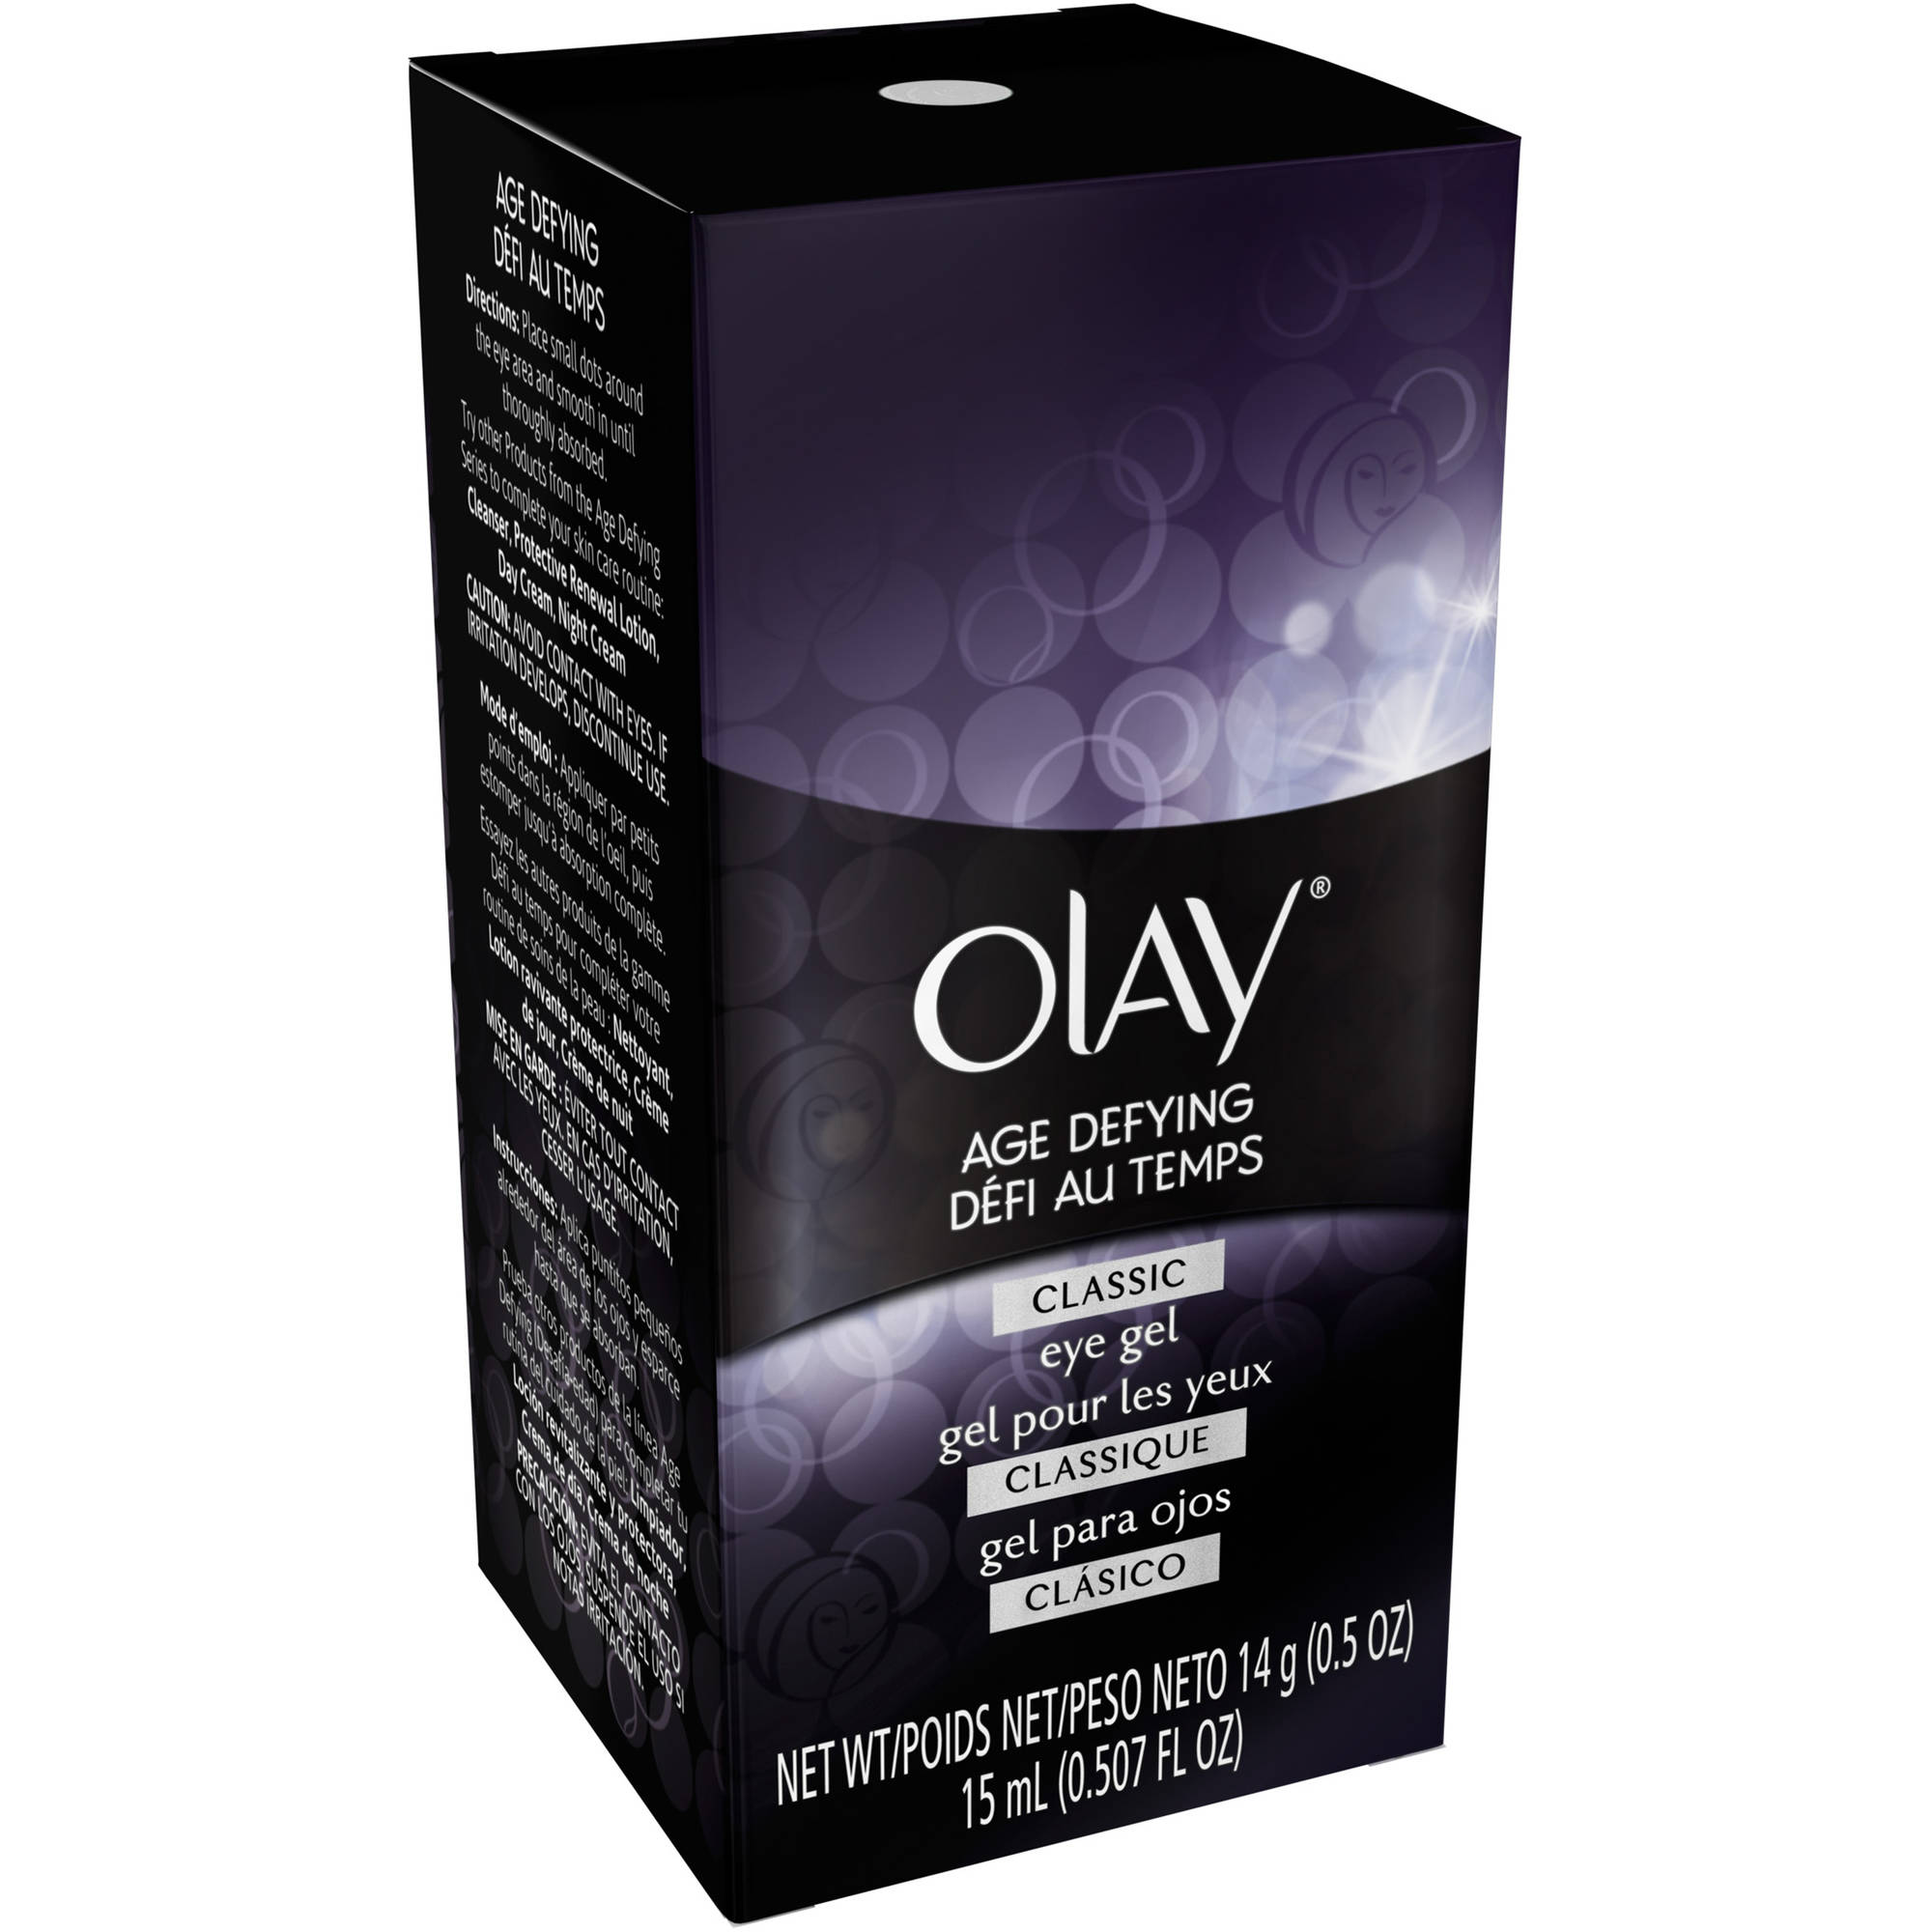 Olay Age Defying Series Revitalizing Anti-Aging Eye Gel  0.5 Oz